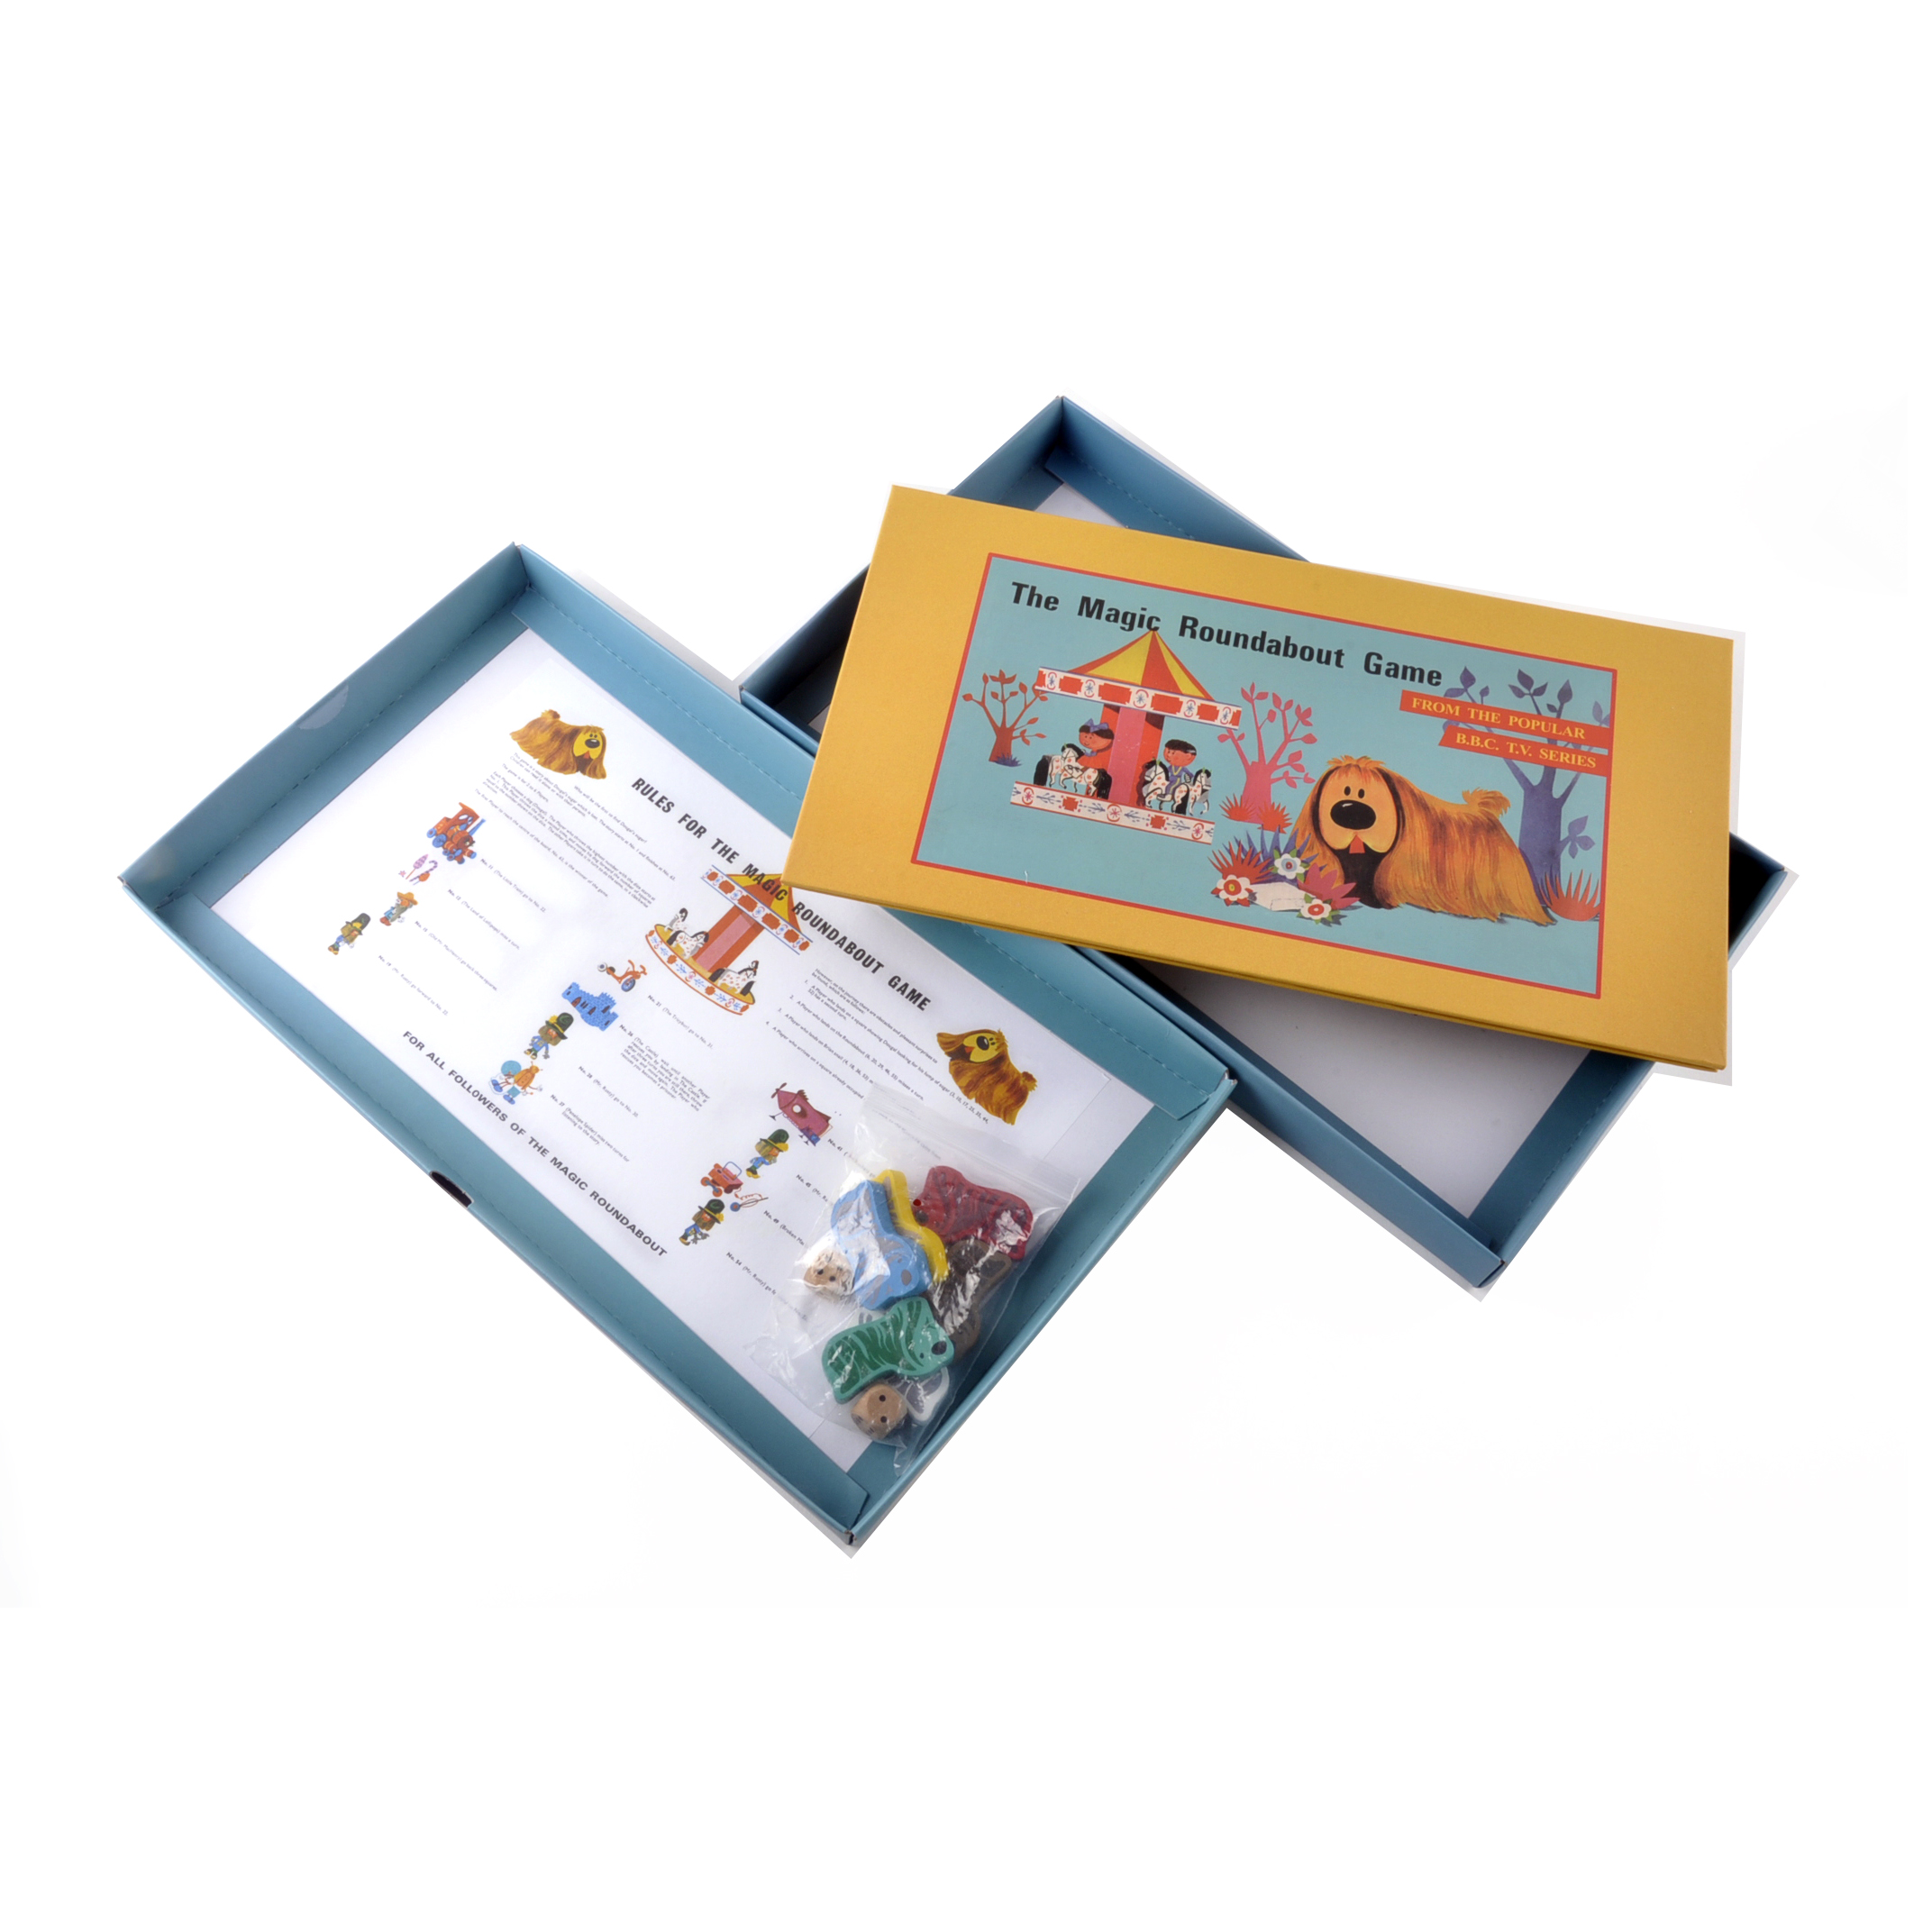 the magic roundabout the classic 1960s children 39 s psychedelic tv series retro board game. Black Bedroom Furniture Sets. Home Design Ideas